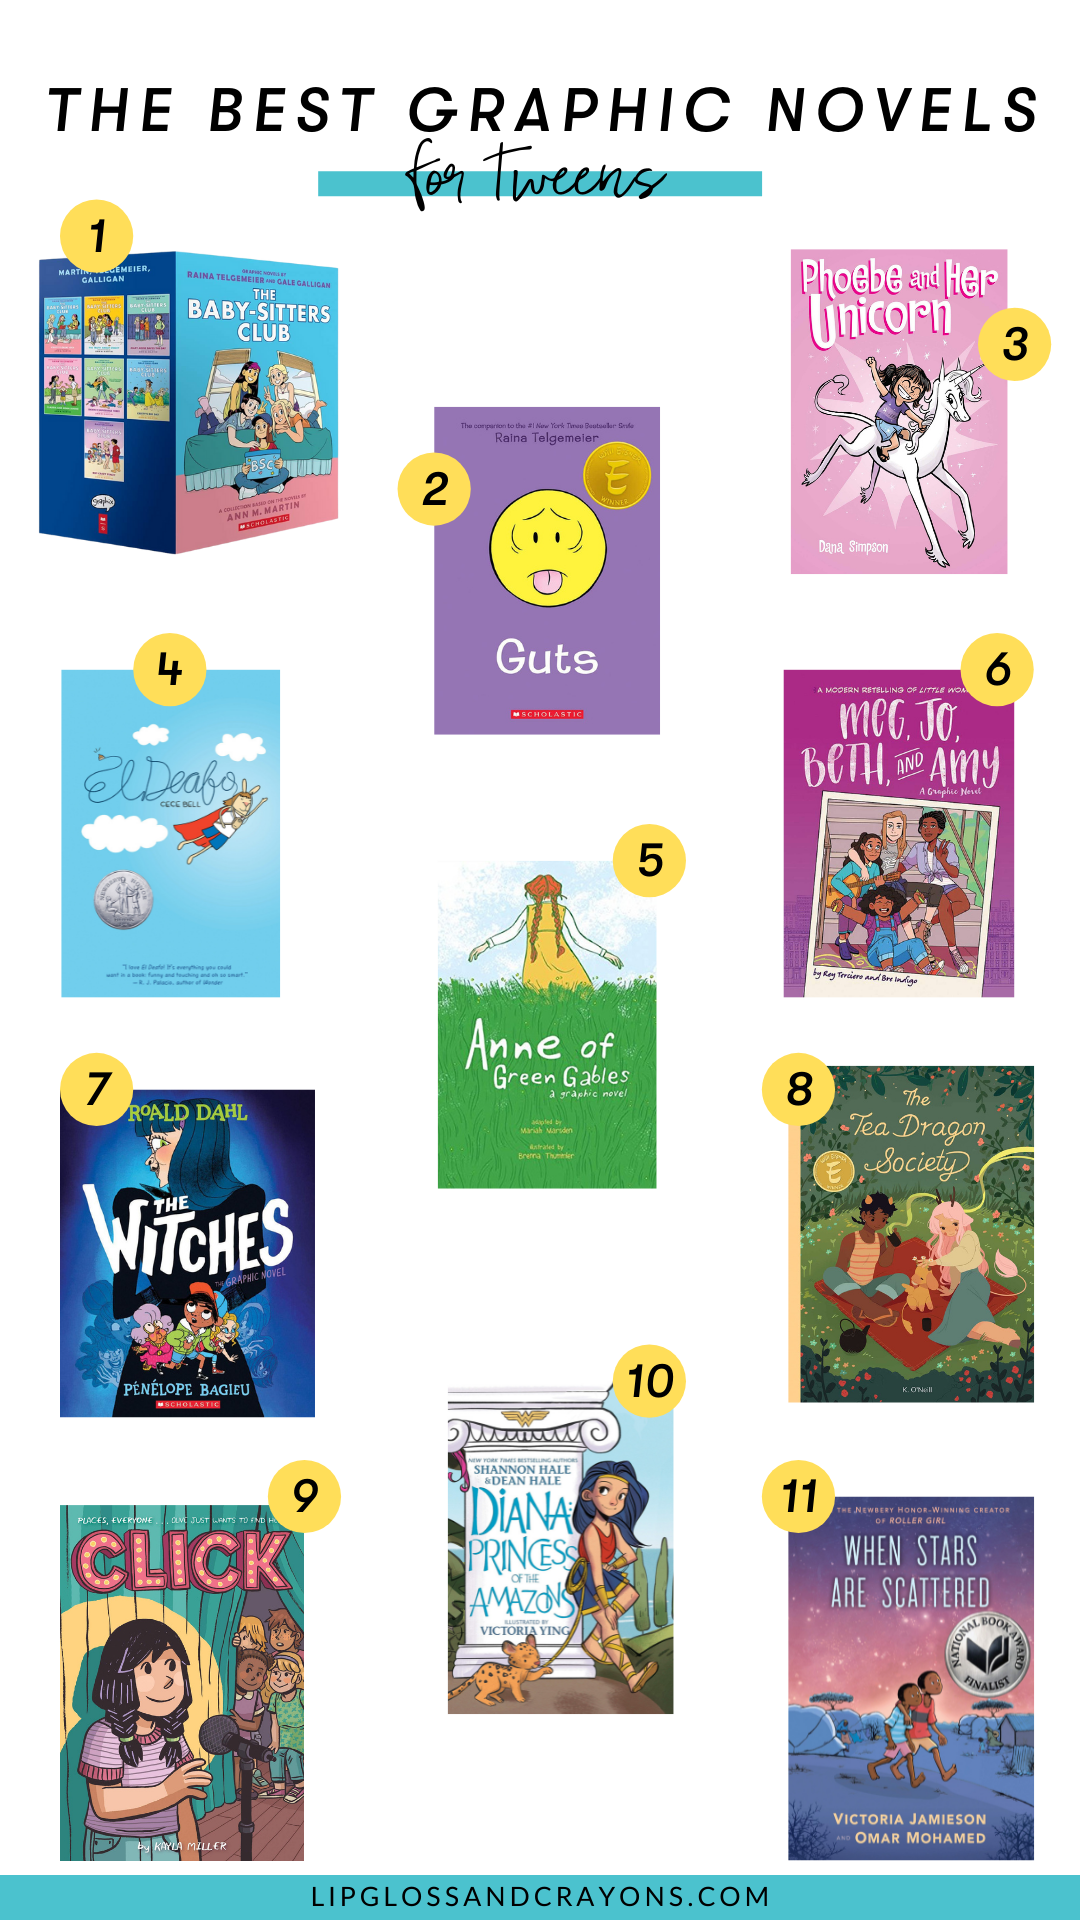 Looking for recommendations for some great graphic novels for tweens? This list is perfect!